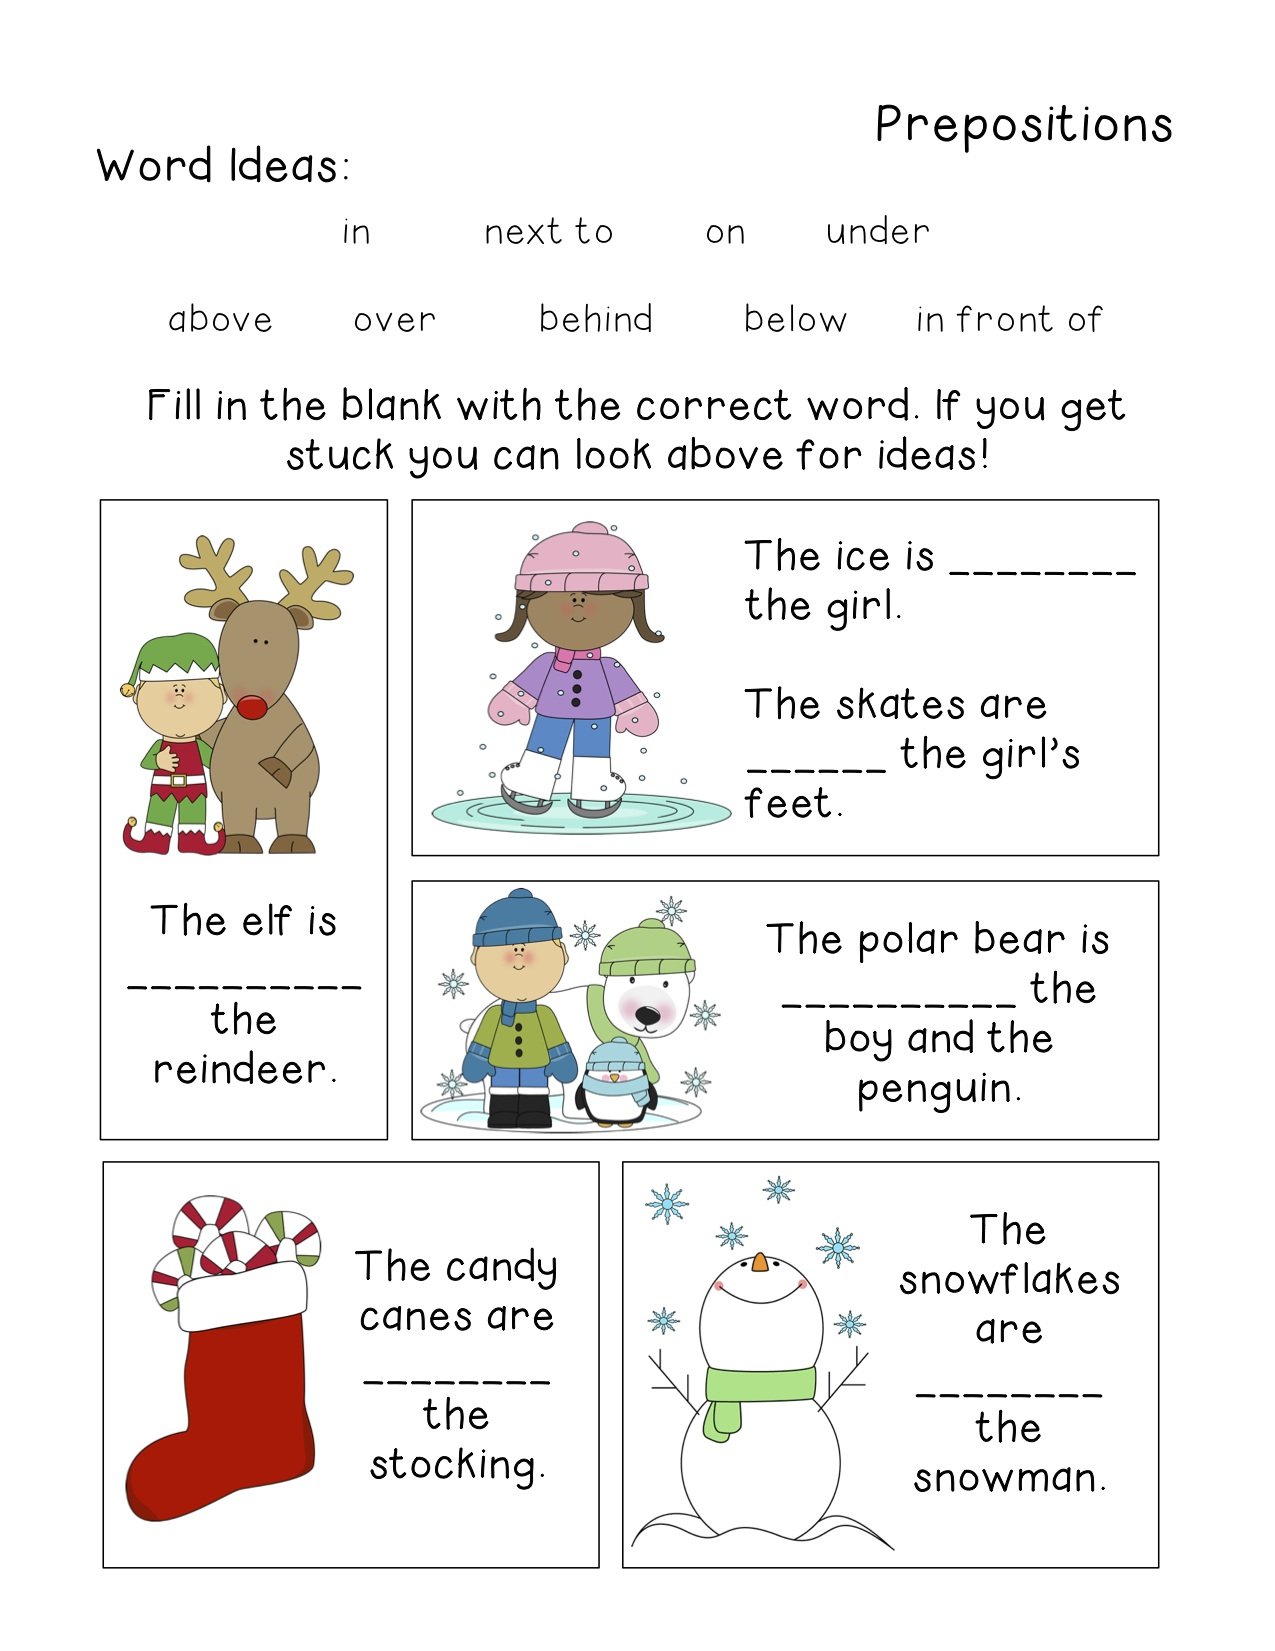 Prepositional Phrase Worksheet Middle School